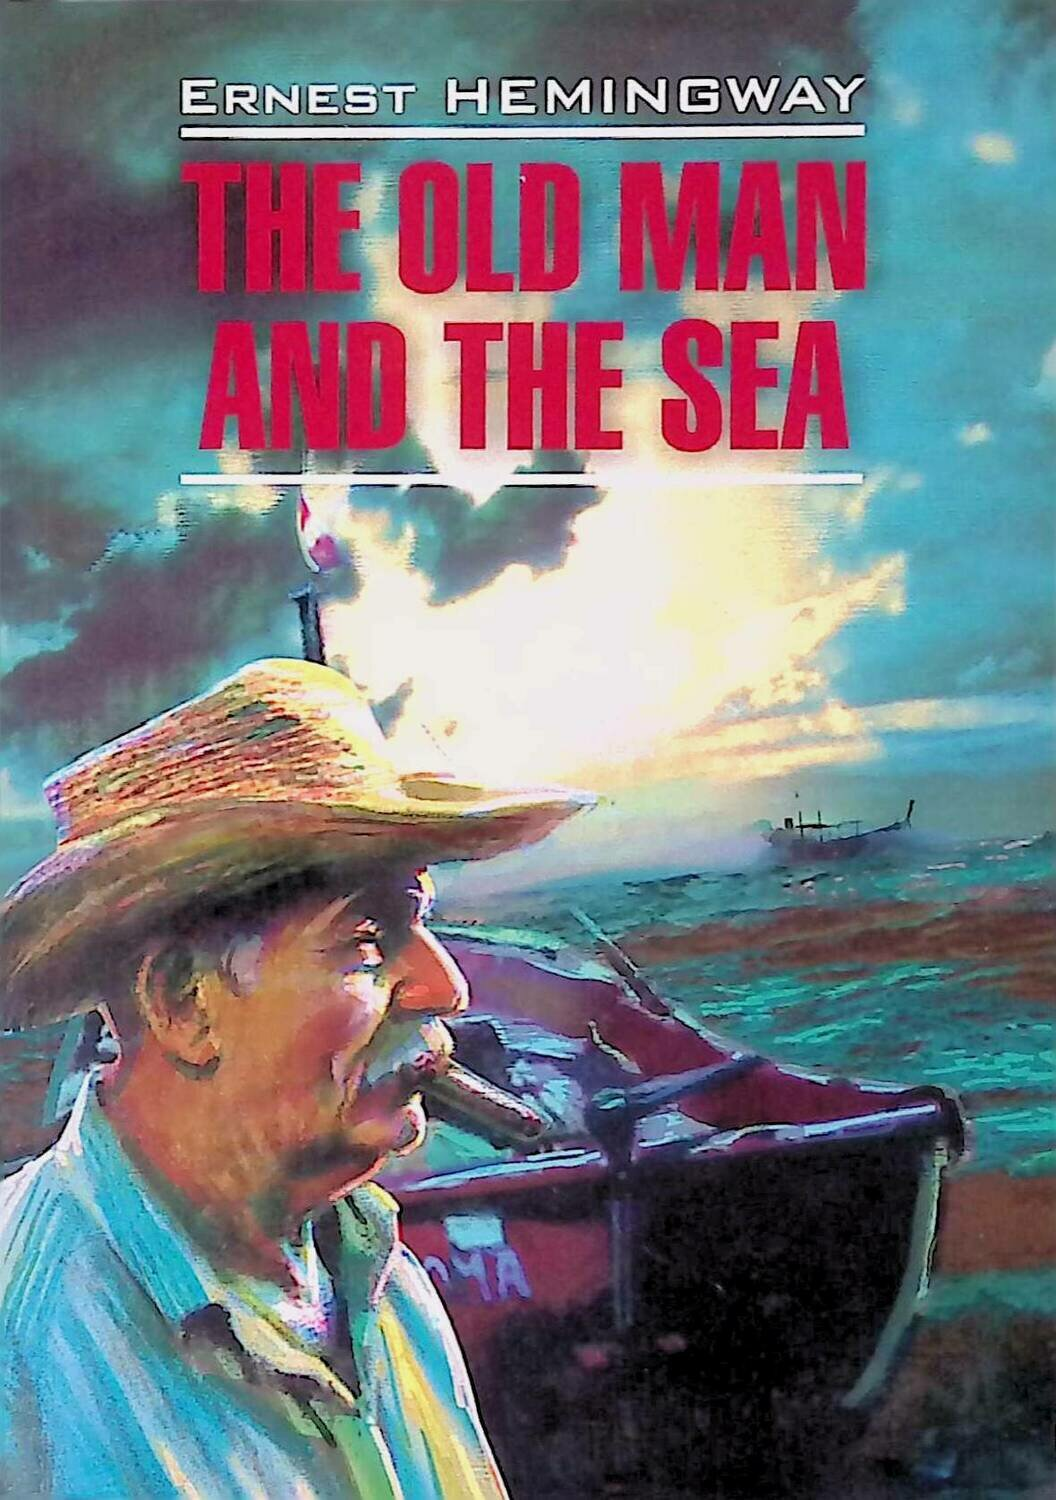 The Old Man and the Sea; Ernest Hemingway